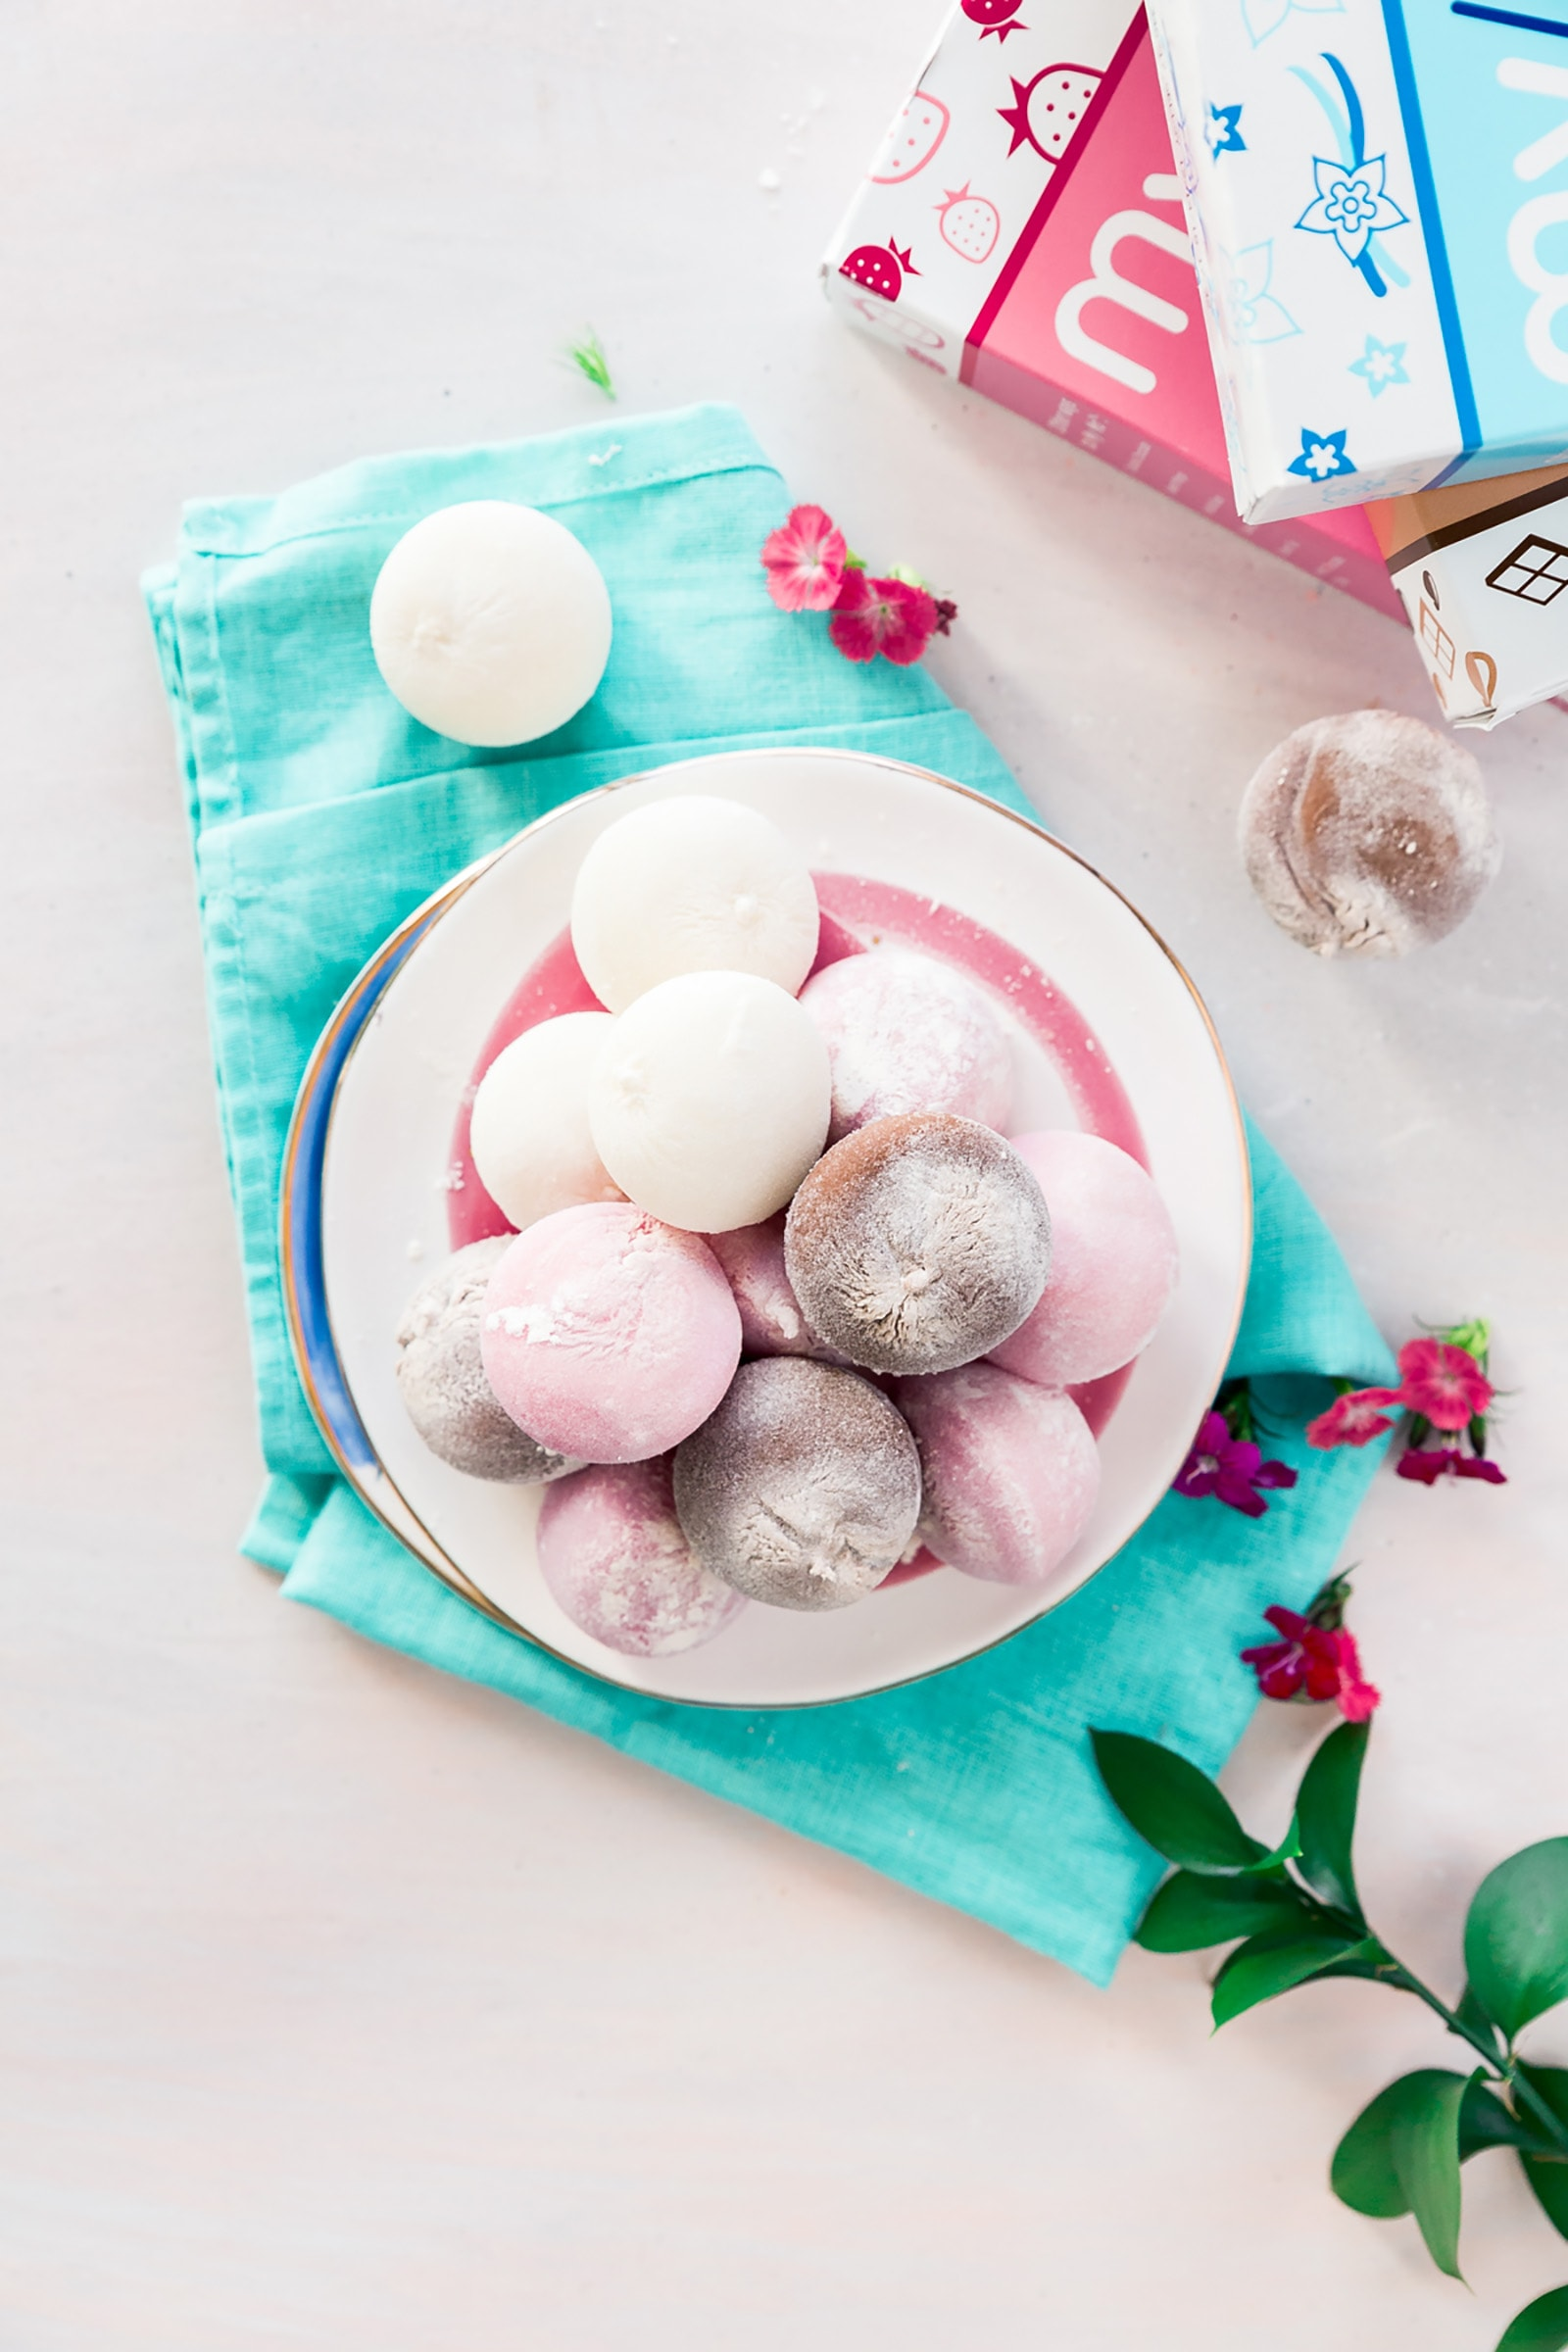 Bring In Spring With My/Mo Mochi Ice Cream